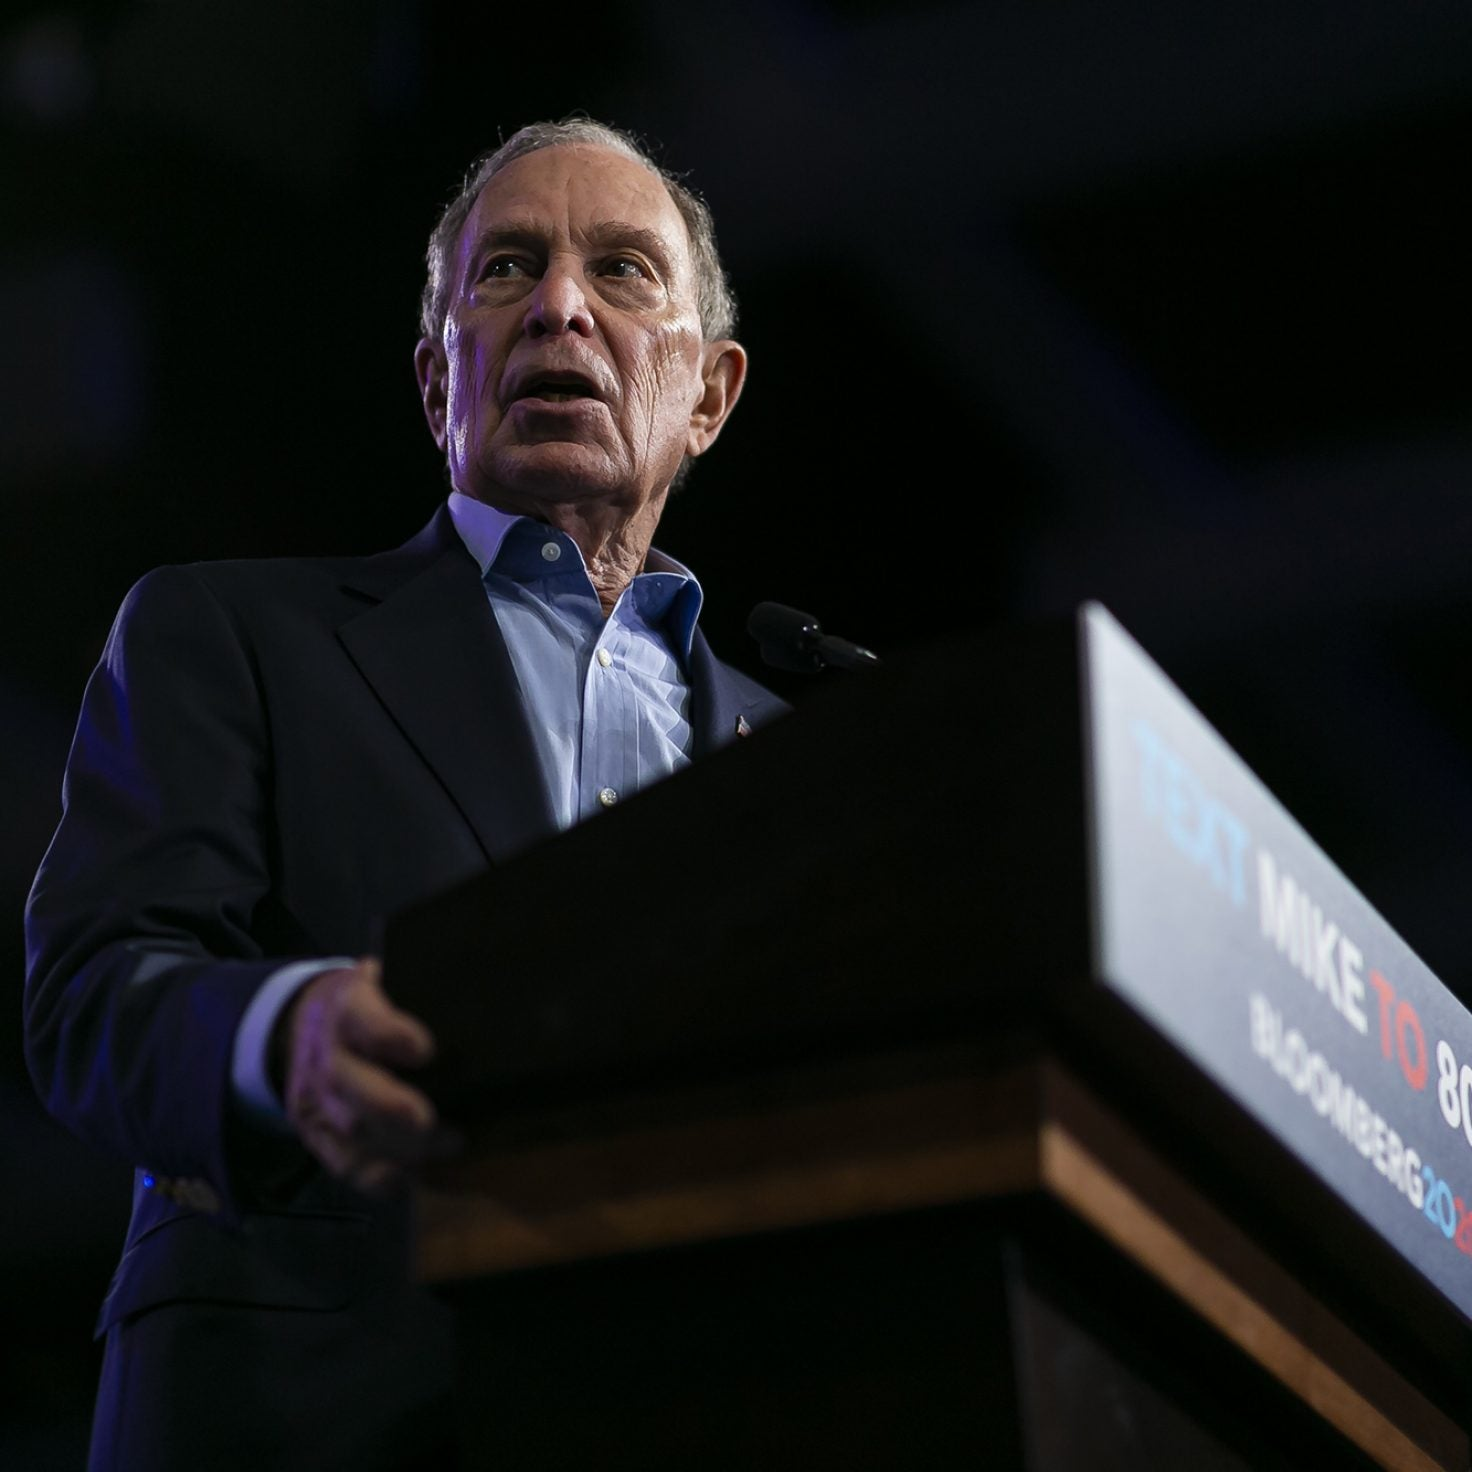 Bloomberg Ends Presidential Campaign, Endorses Biden